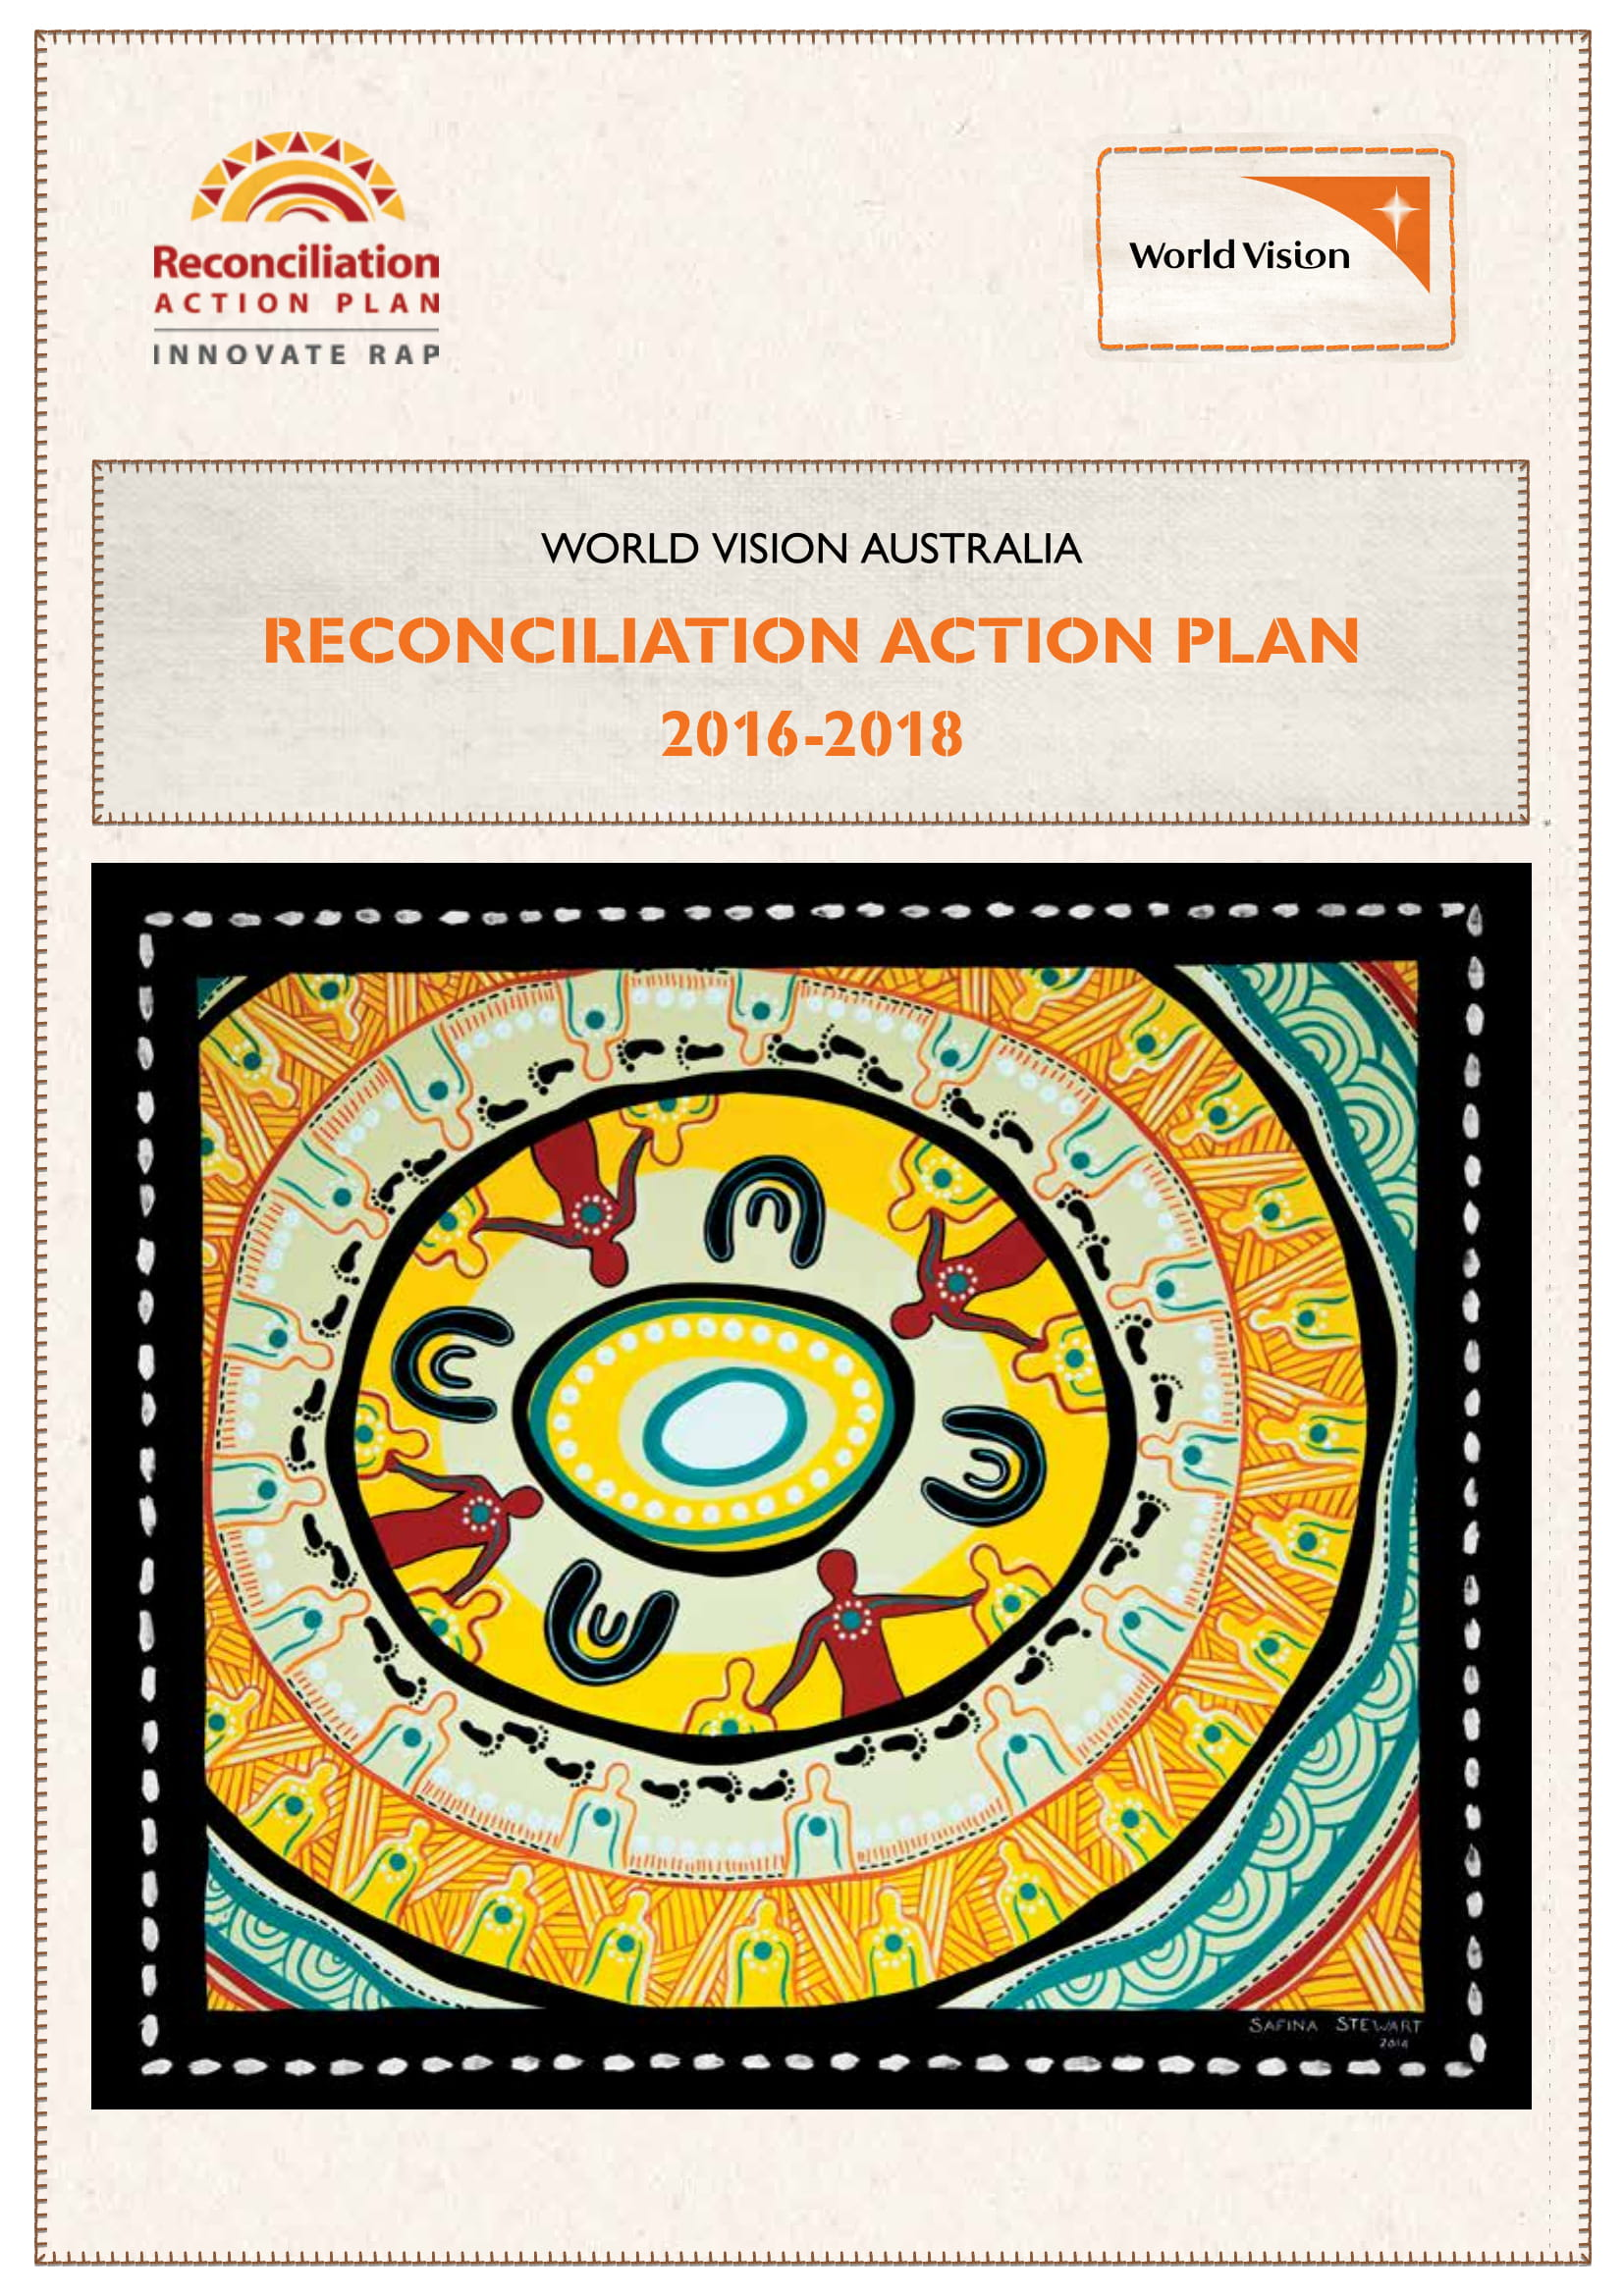 simple reconciliation action plan example 01